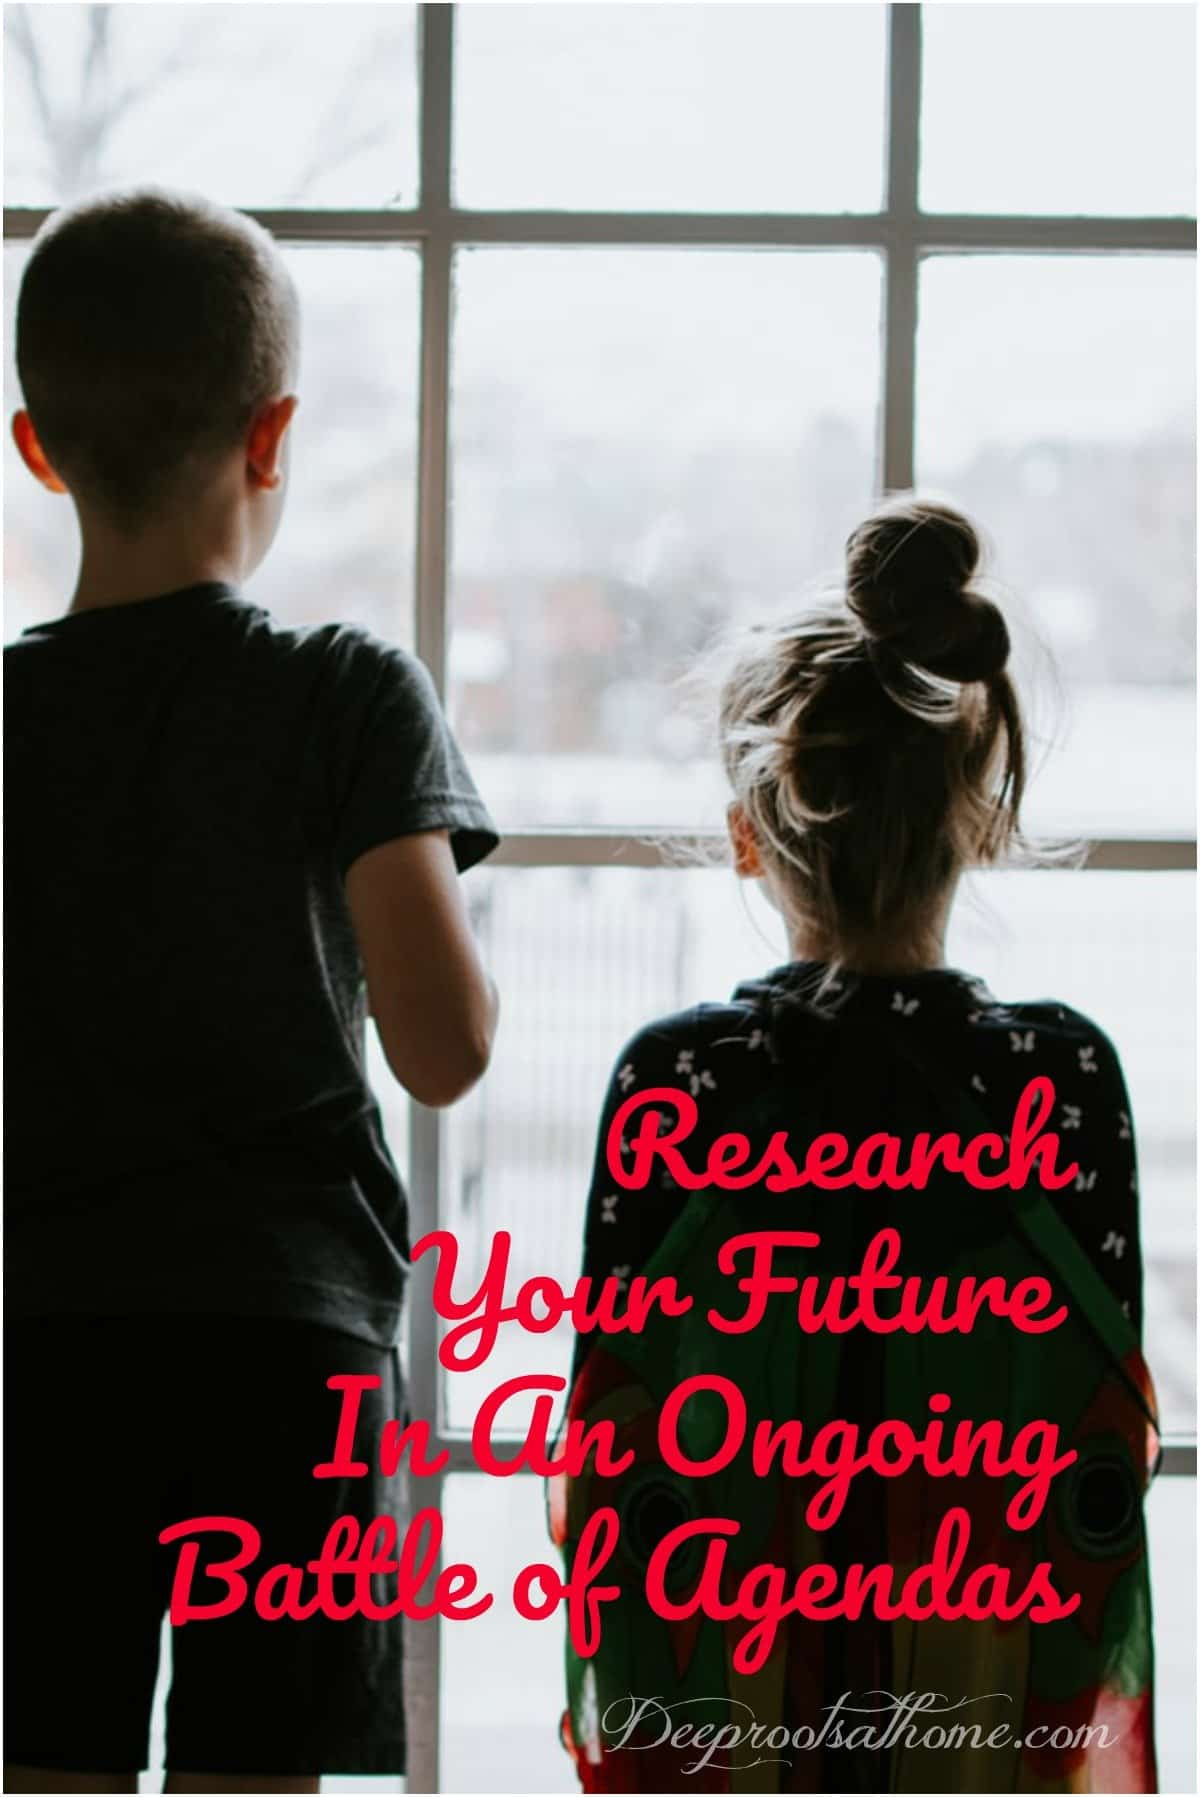 Research Your Future In An Ongoing Battle of Agendas